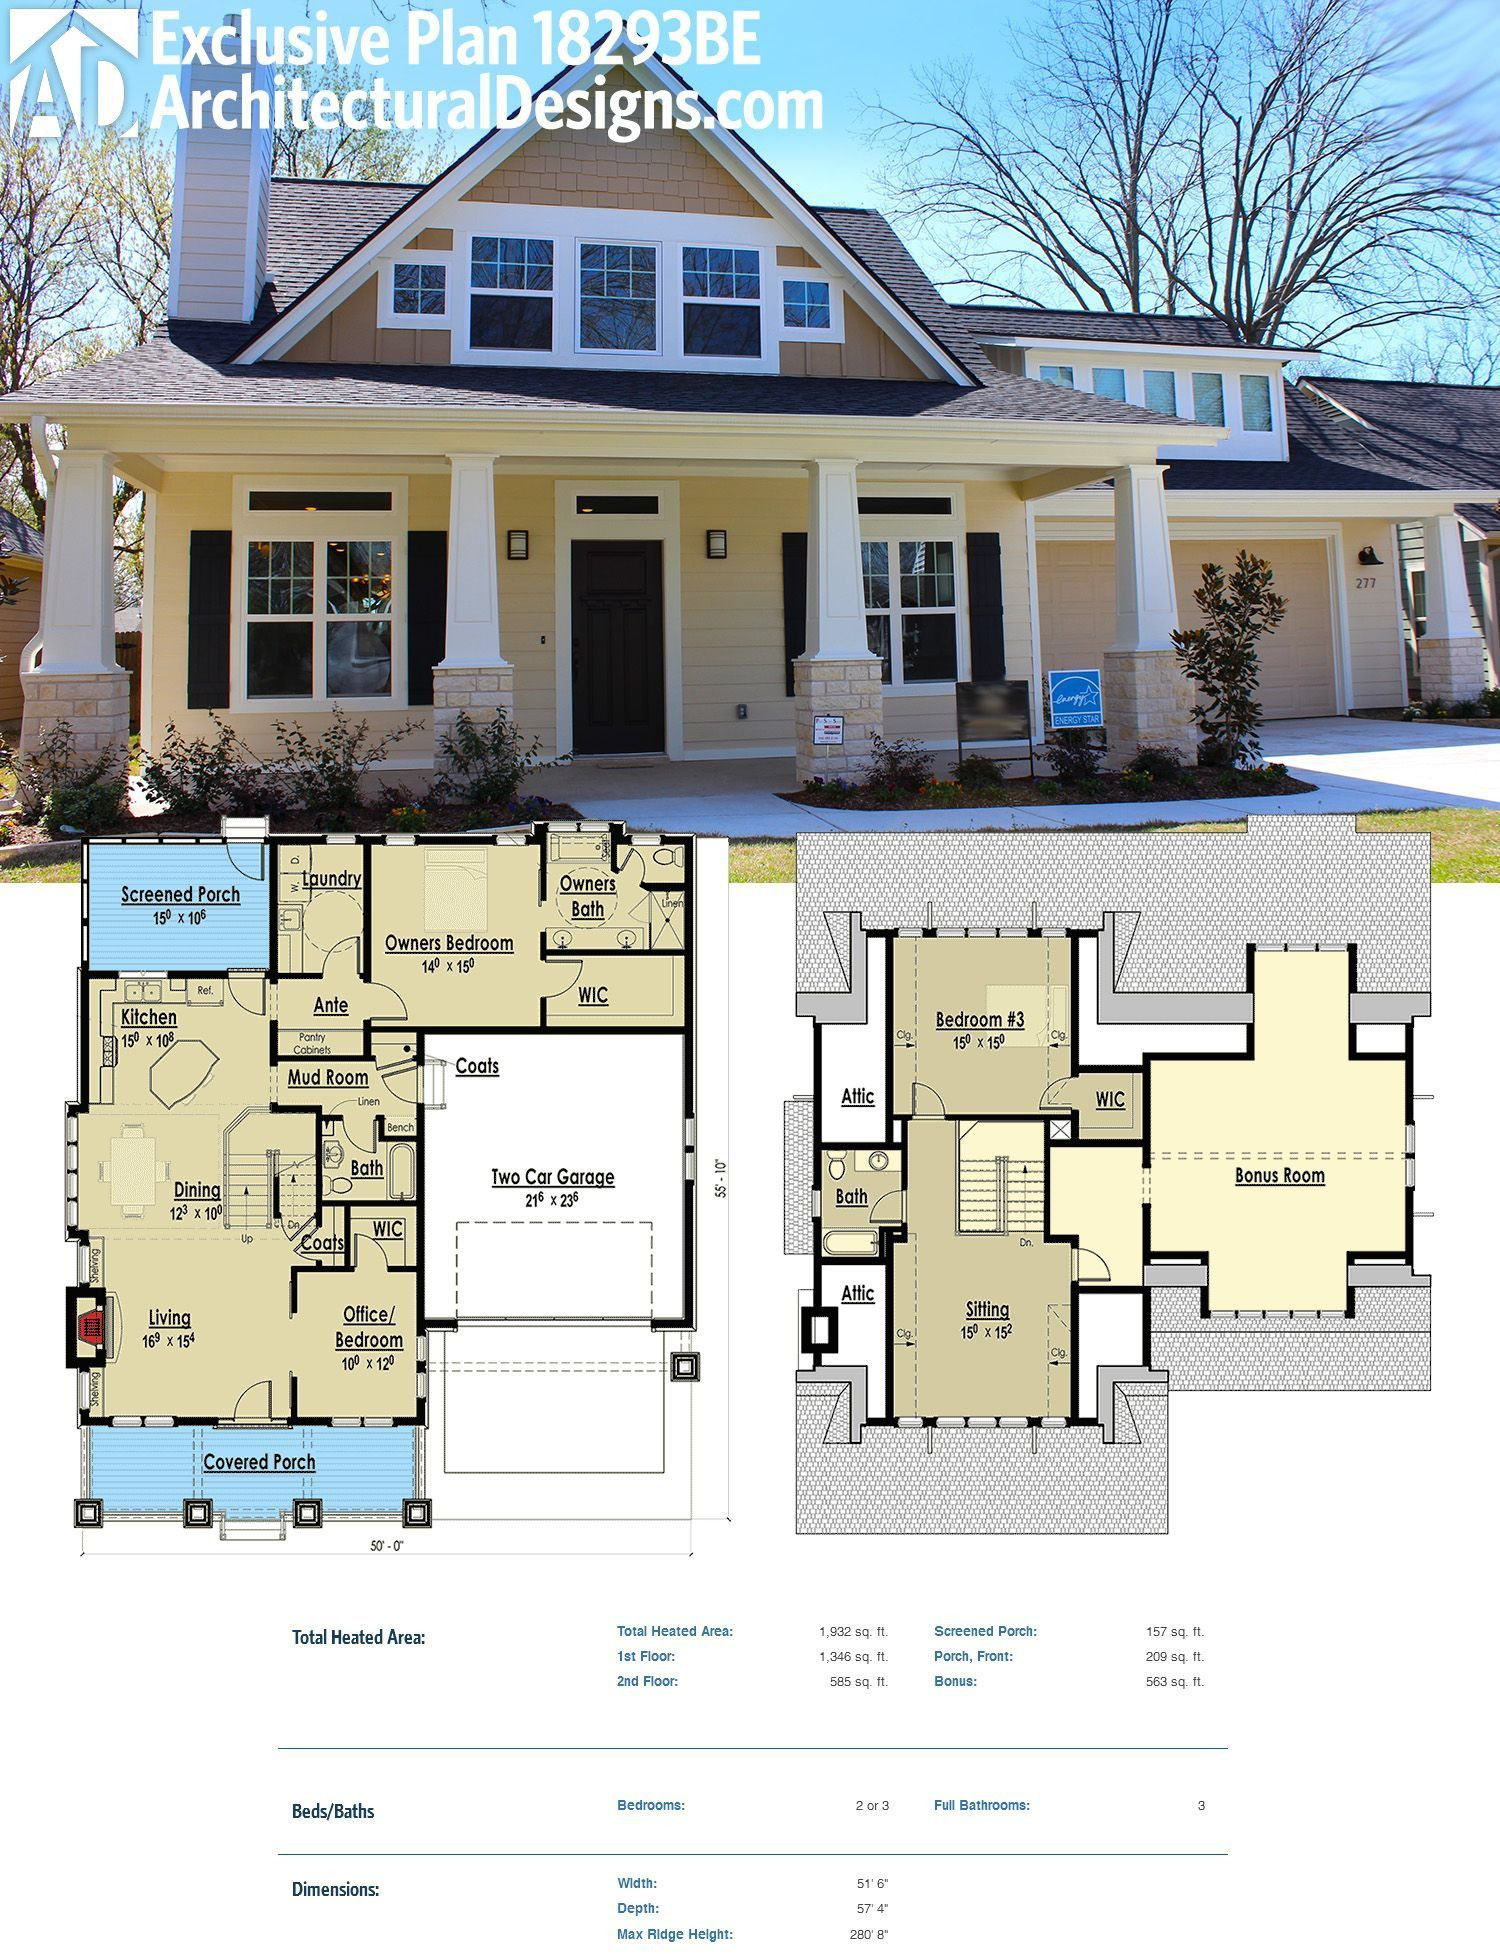 House Floor Plans Without Garage In 2020 Small Farmhouse Plans Craftsman House Plans Farmhouse Plans